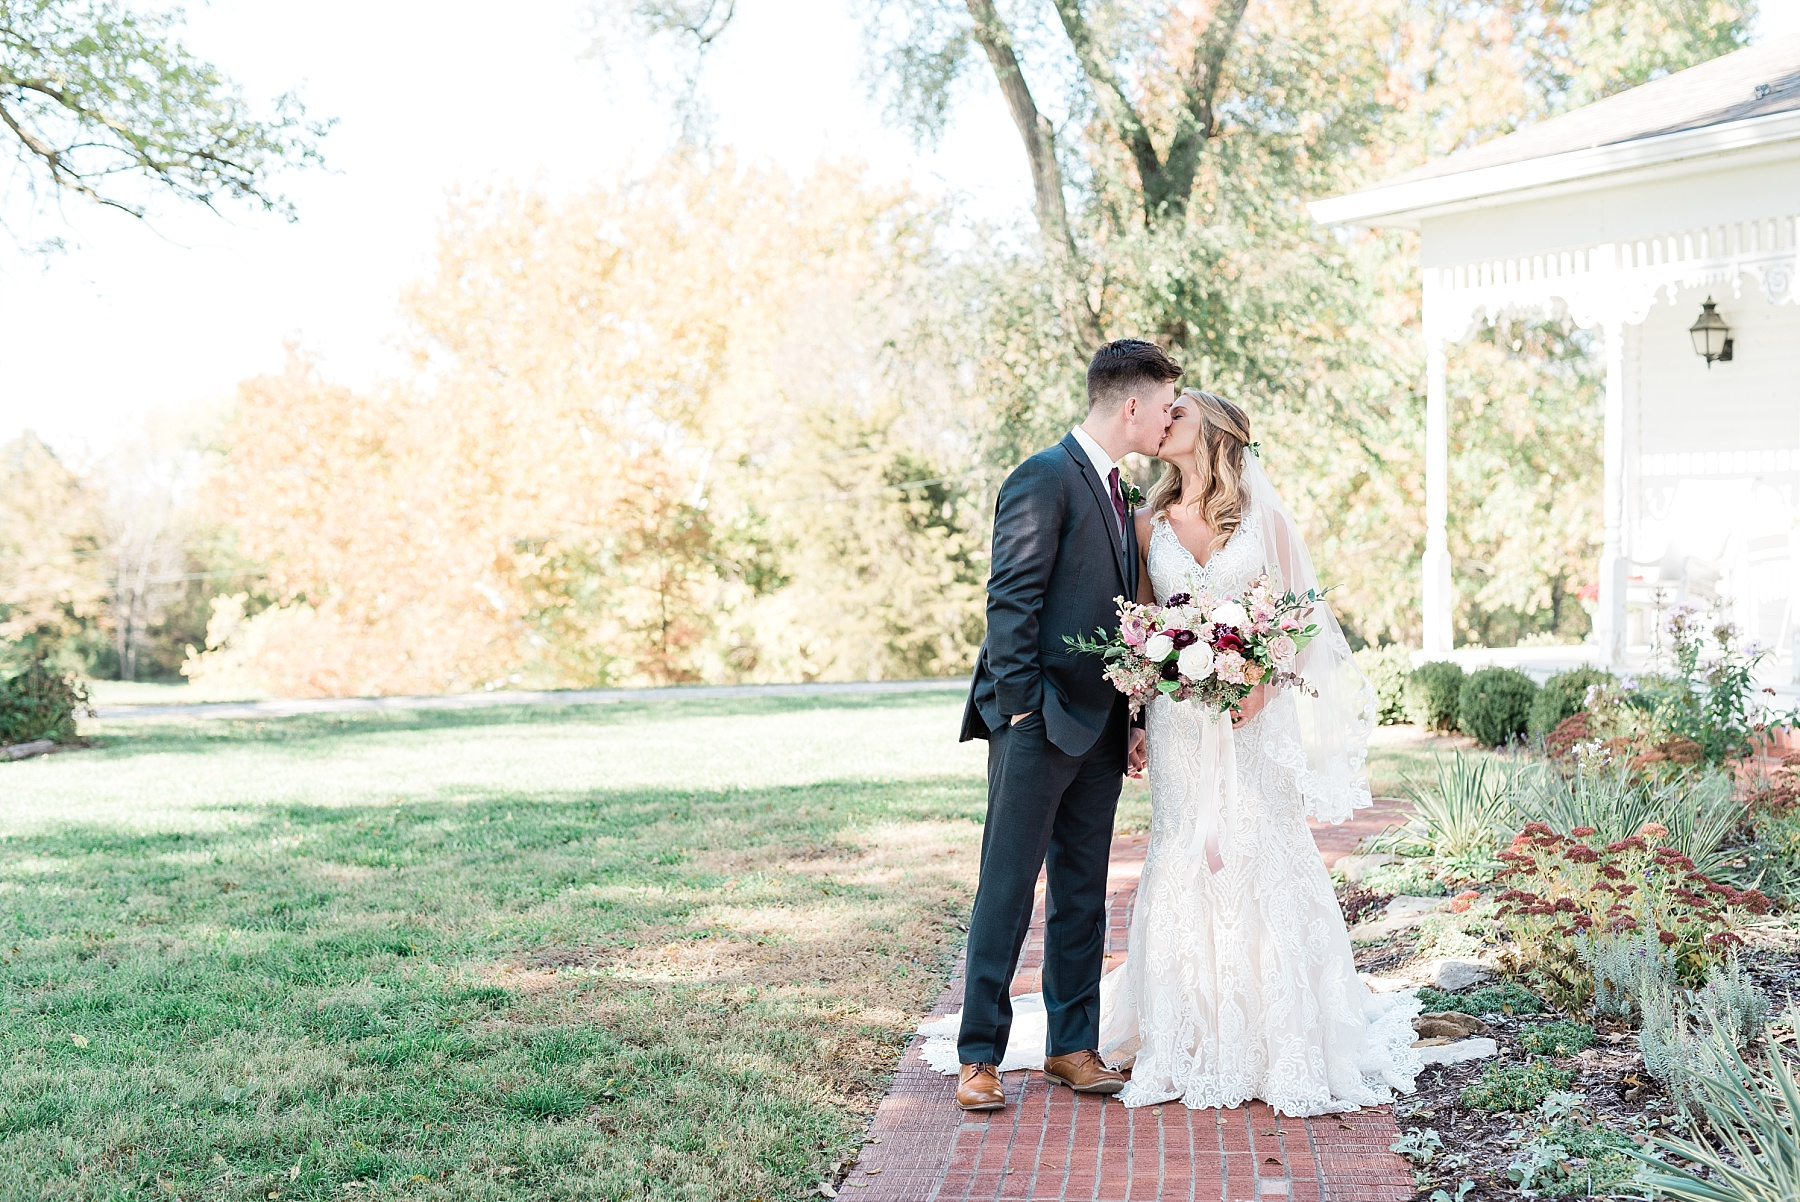 Golden Autumn Outdoor Wedding with Ivory, Bergundy, and Blush Color Palette at Blue Bell Farms  by Kelsi Kliethermes Photography_0014.jpg